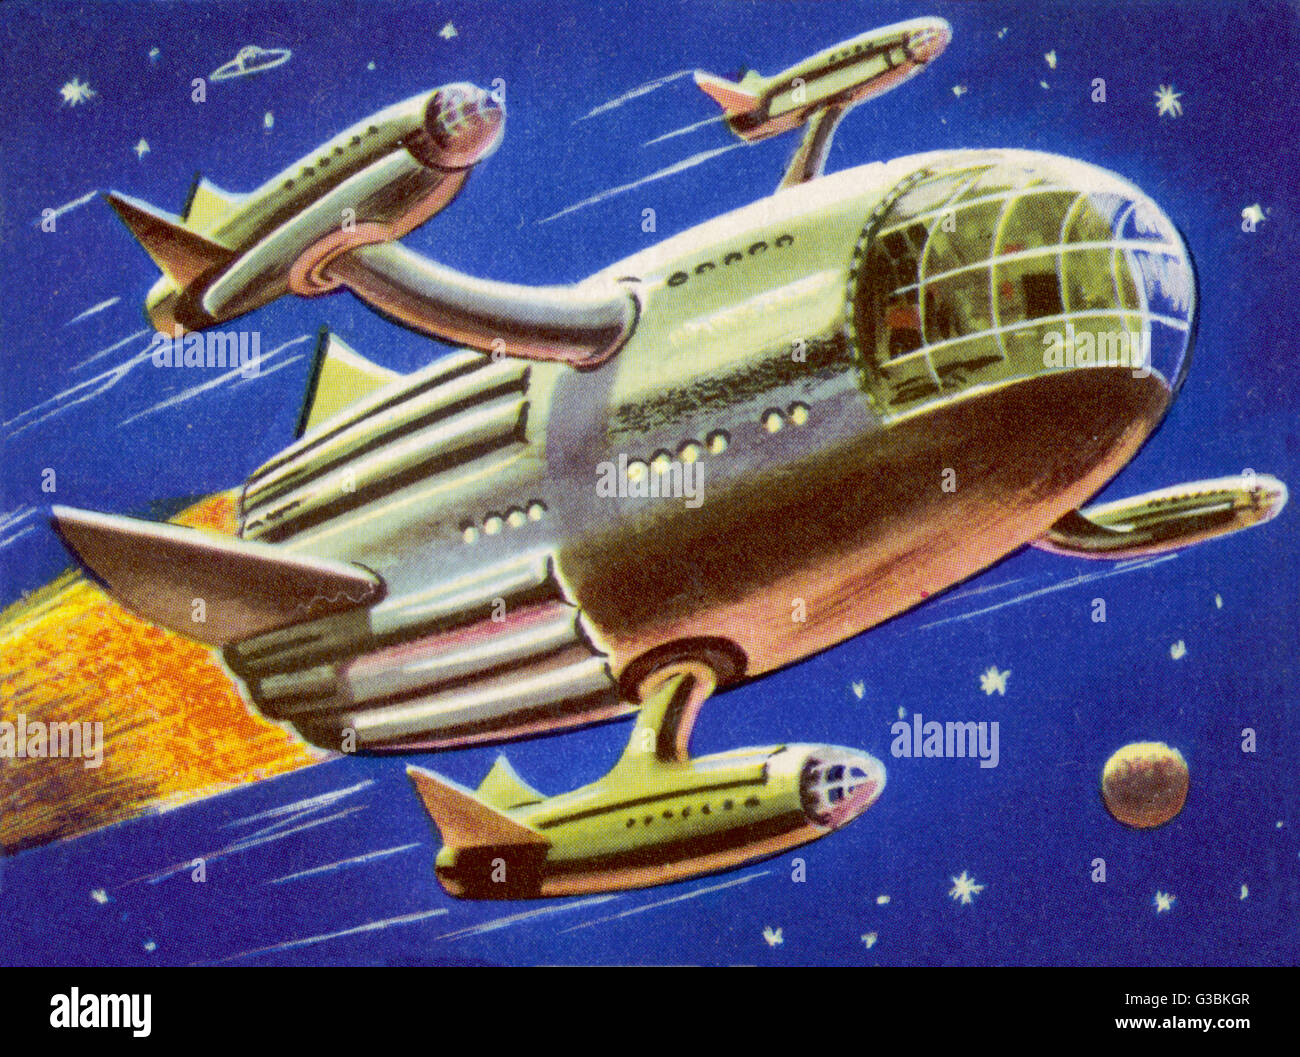 INTERPLANETARY SPACECRAFT,  CARRYING FOUR SMALLER ROCKETS        Date: circa 1950 - Stock Image